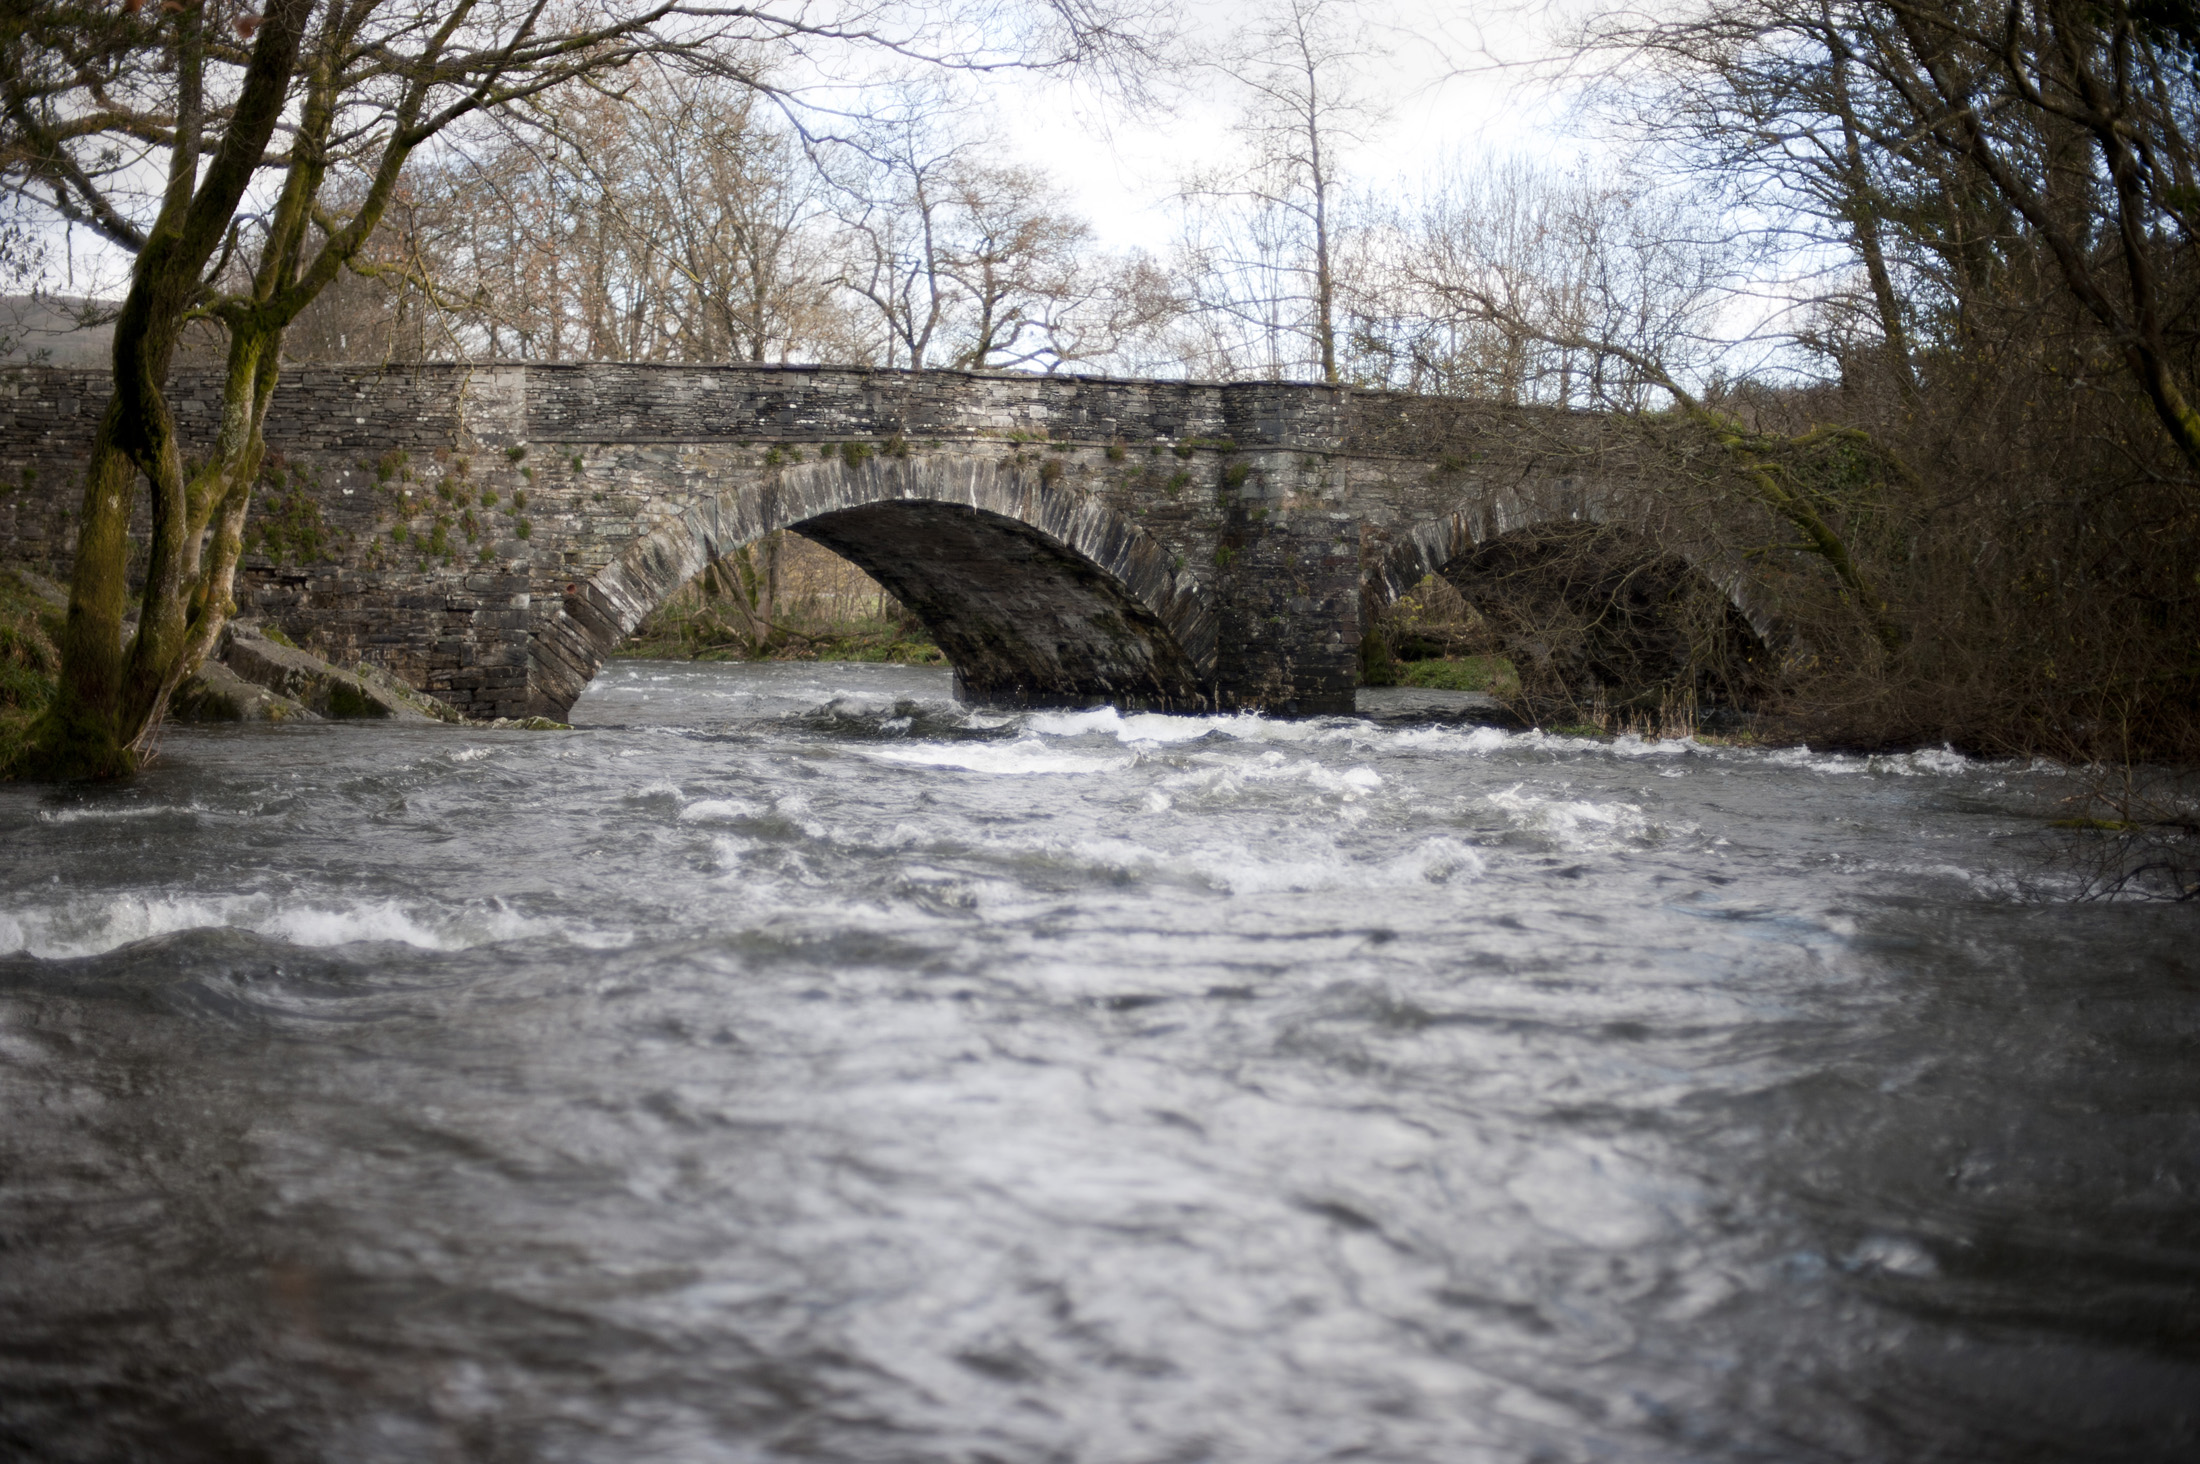 View of a fast flowing river in spate passing under the old stone arches of Skelwith Bridge in the Lake District in Cumbria